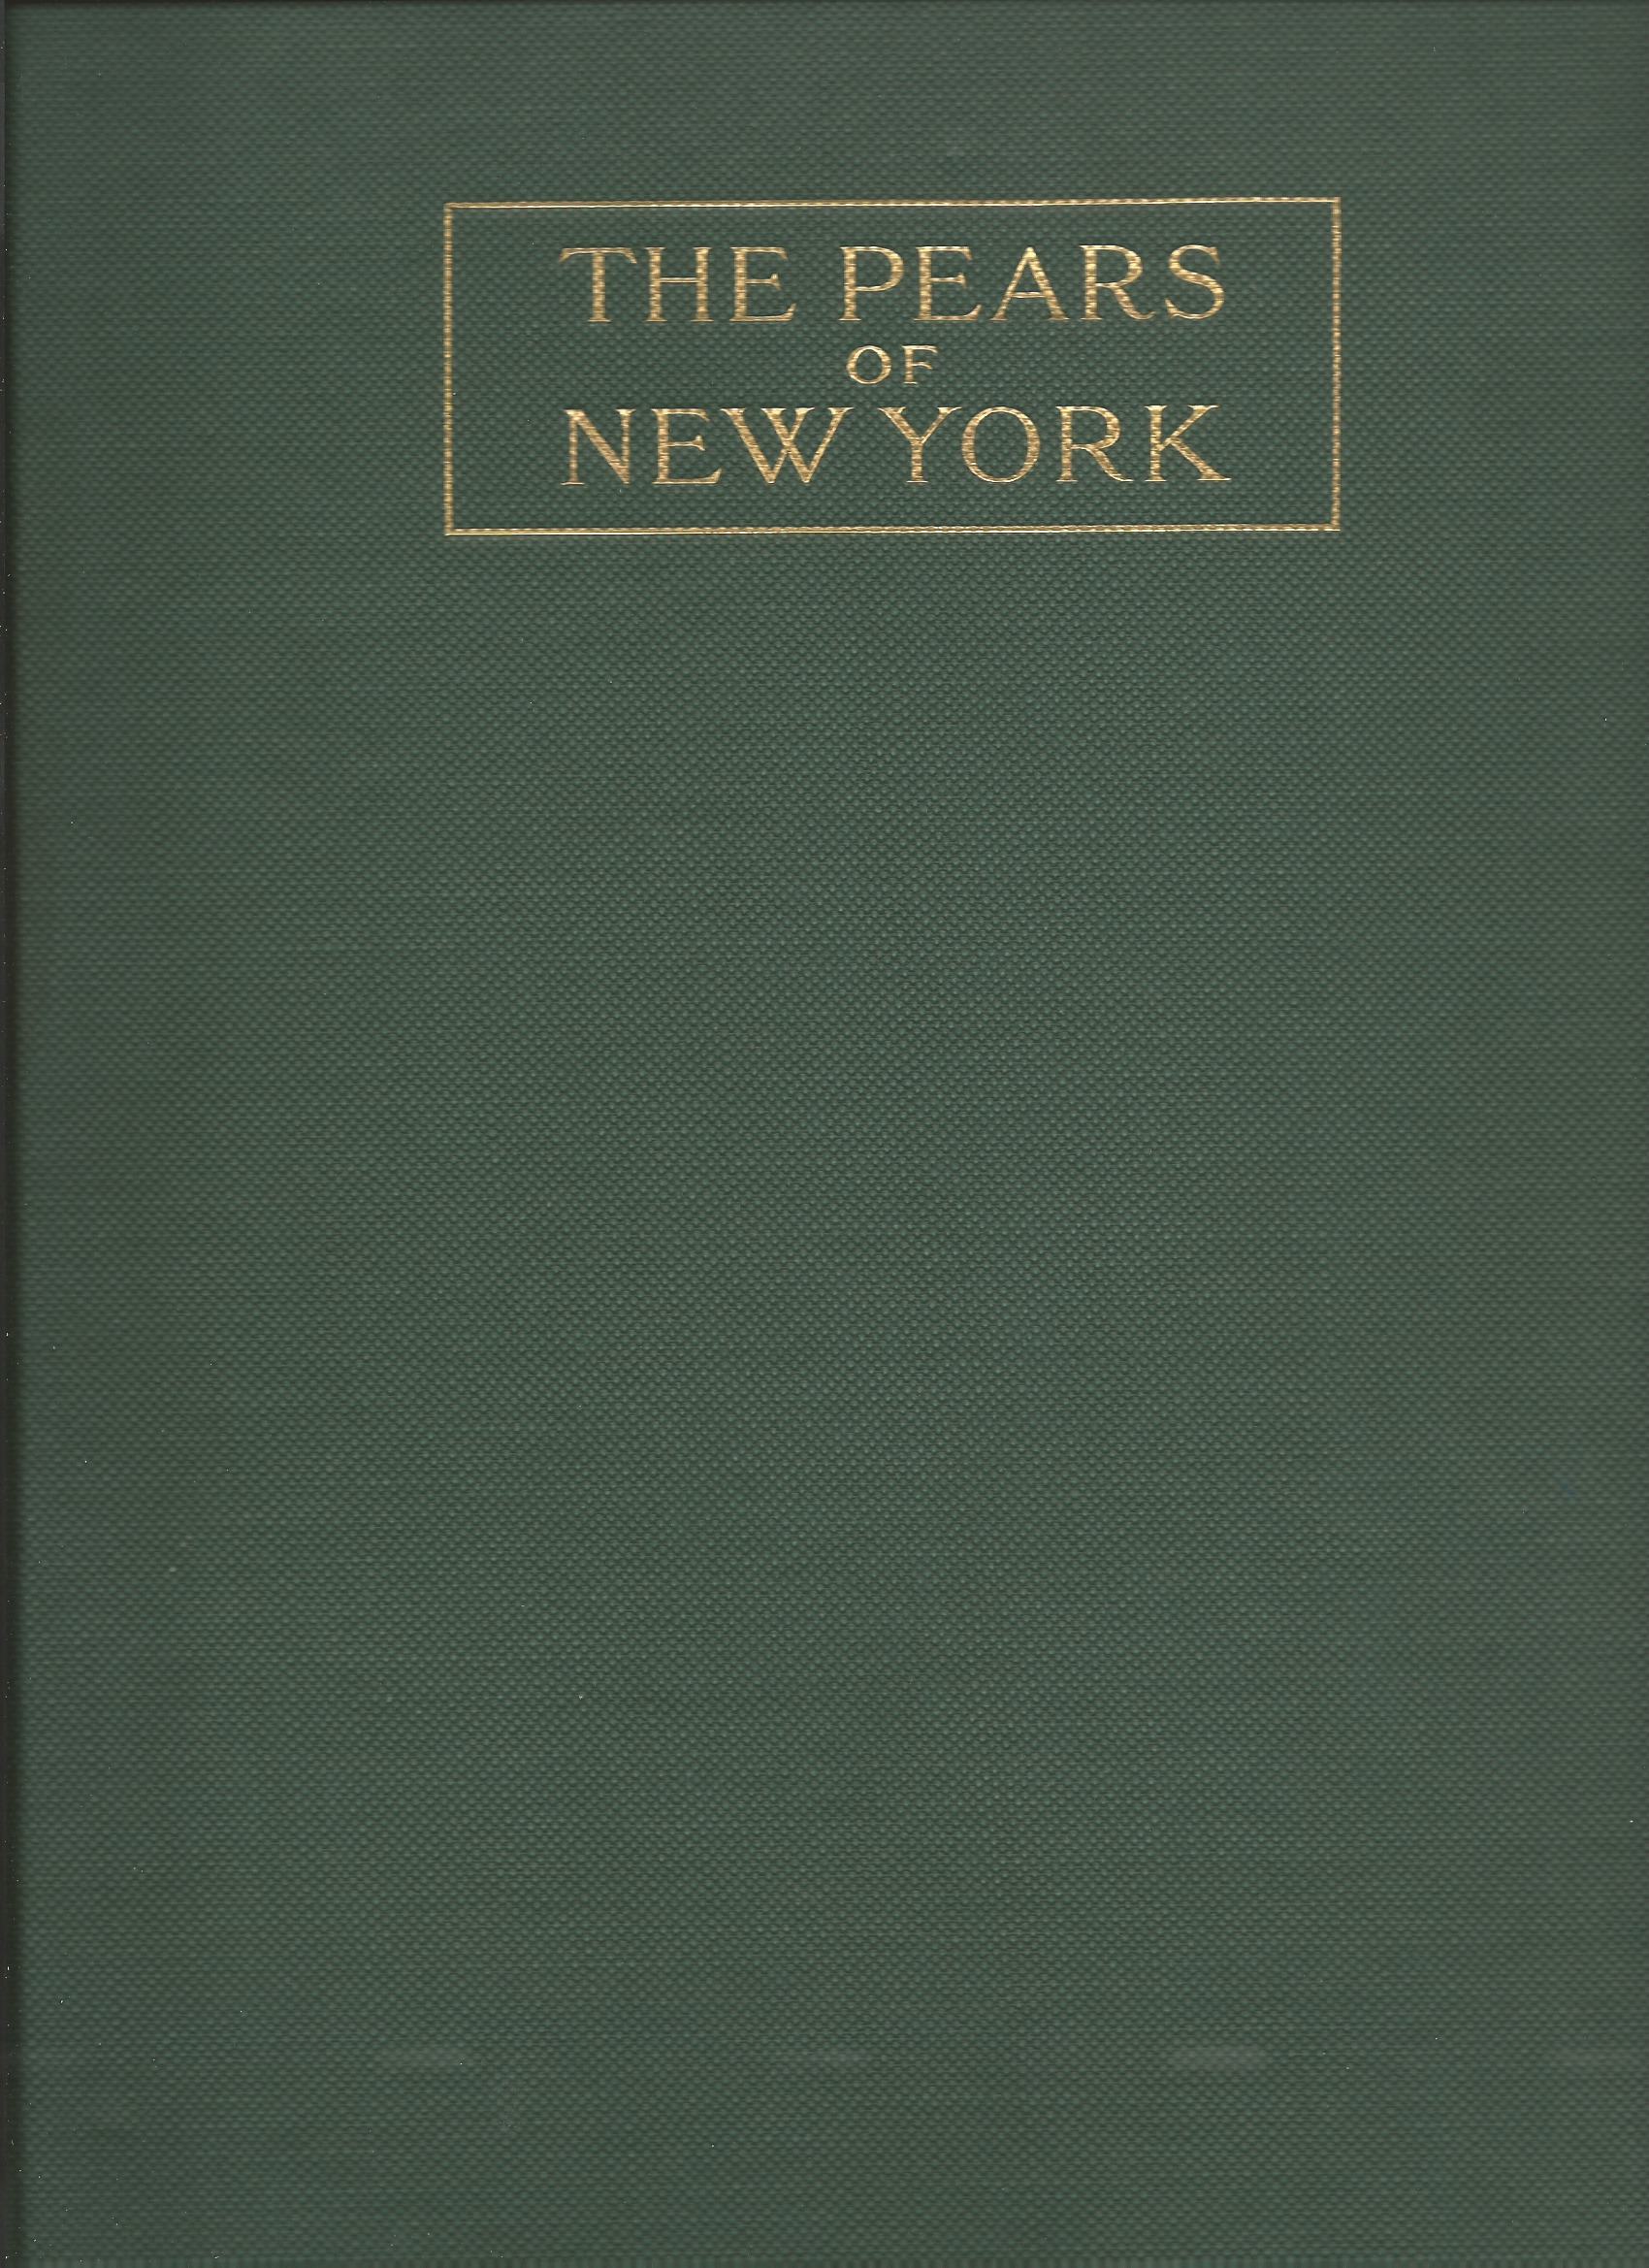 Image for THE PEARS OF NEW YORK : State of New York - Department of Agriculture - Twenty-Ninth Annual Report - Vol. 2 , Part II